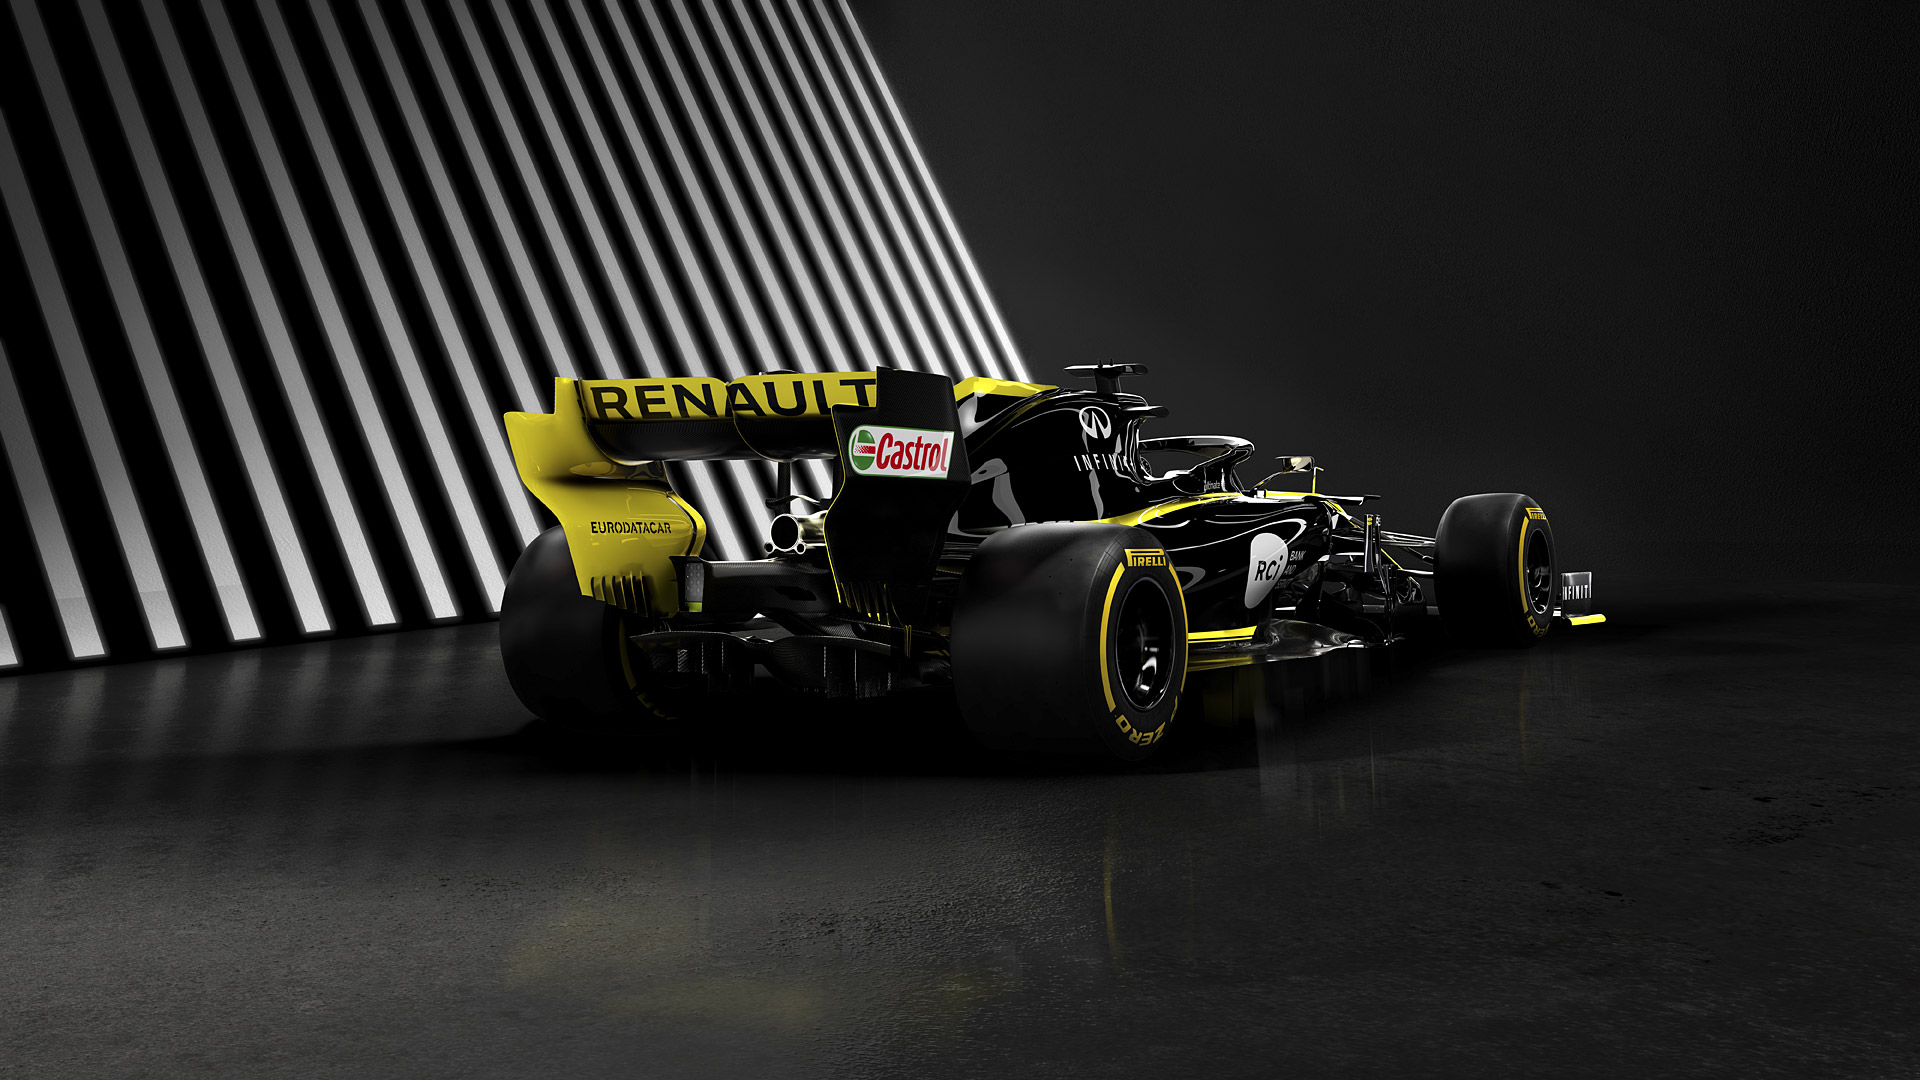 2019 Renault RS19 Wallpapers HD Images   WSupercars 1920x1080